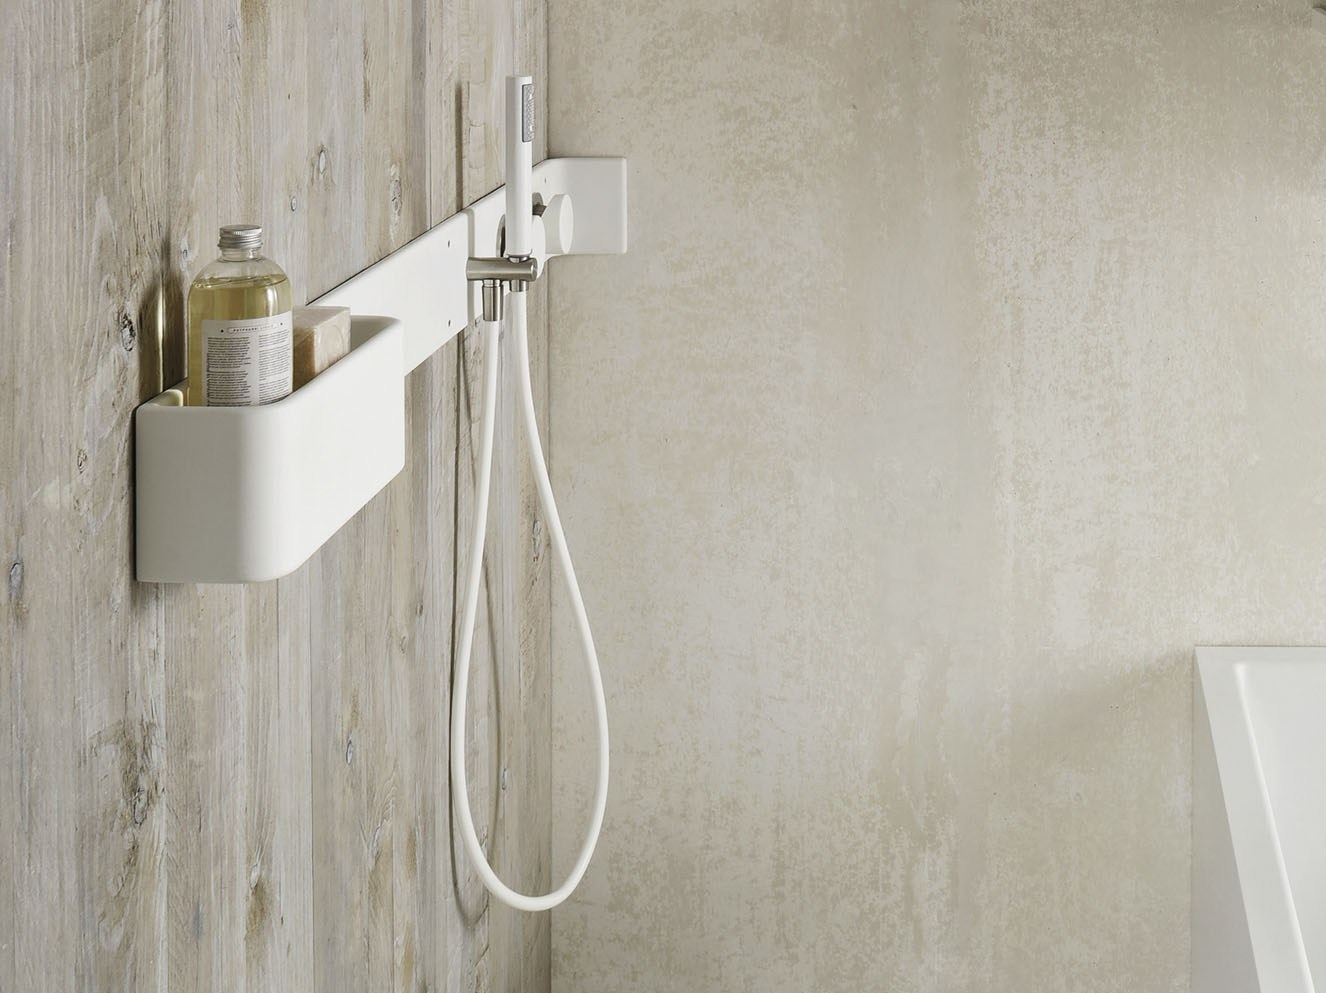 corian bathroom wall shelf shower tap ergo nomic